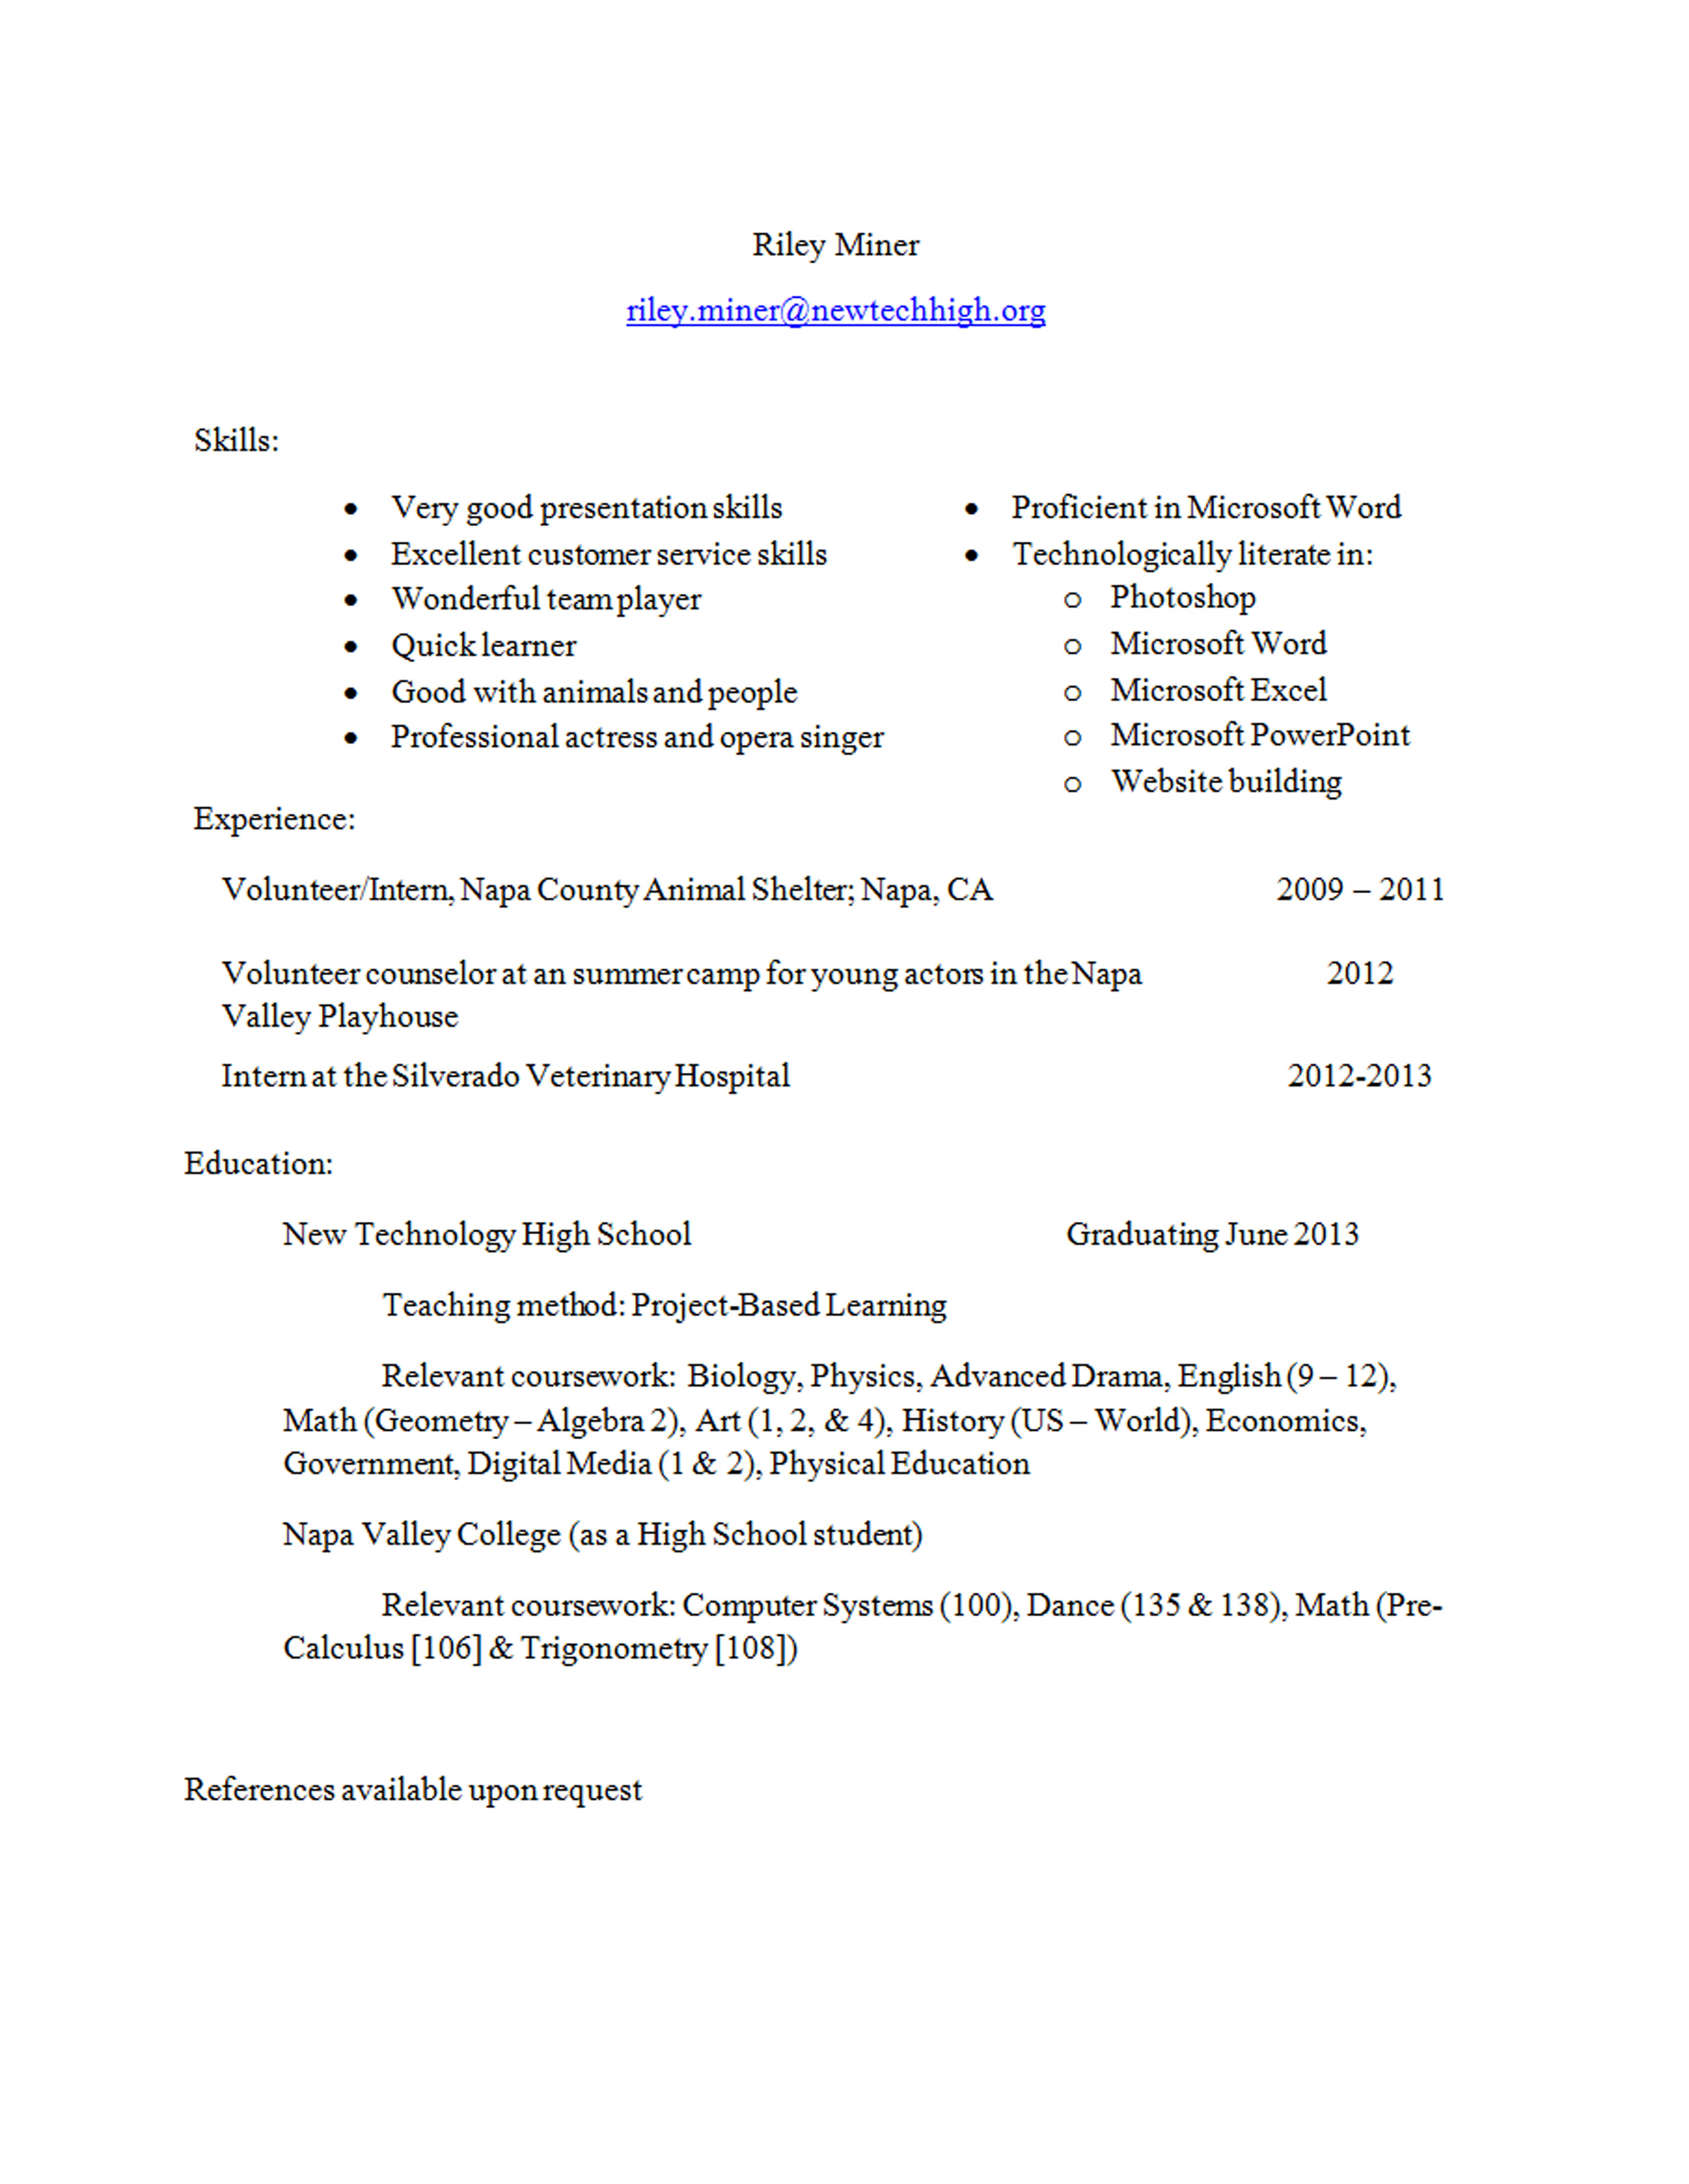 Mining Resume Examples My Résumé And Letters Of Recommendation Riley Miner